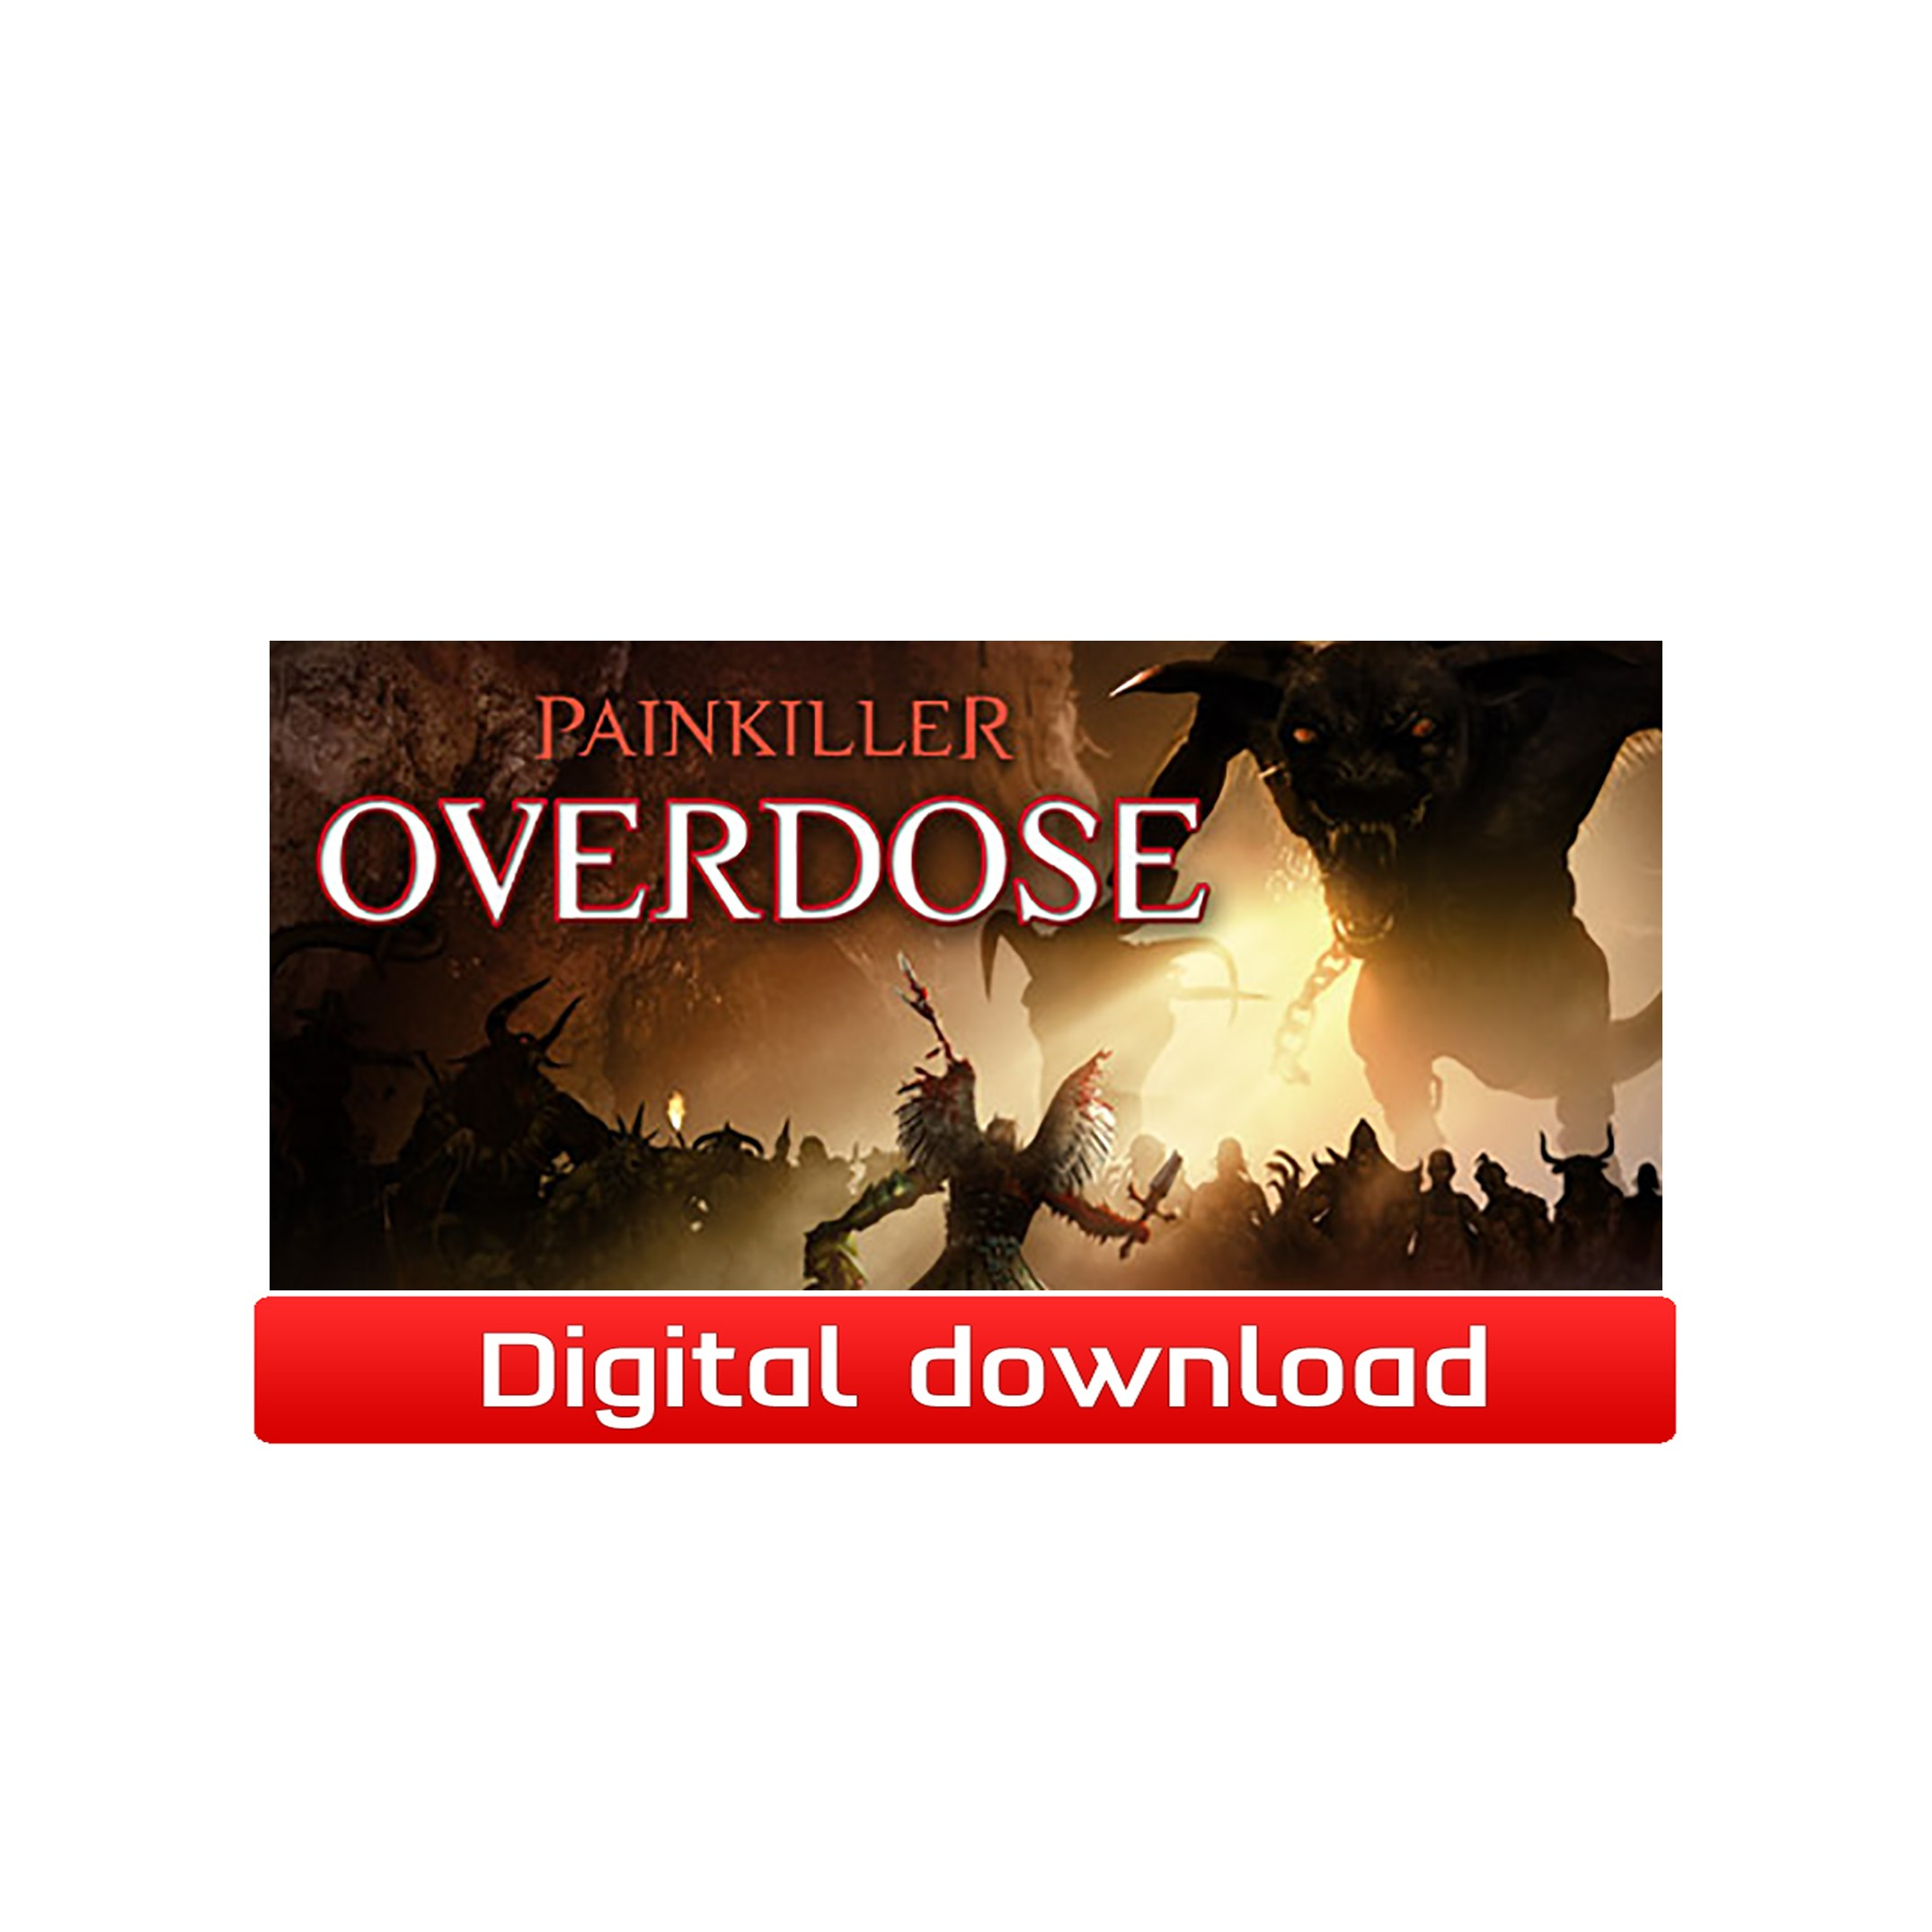 39440 : Painkiller Overdose (PC nedlastning)